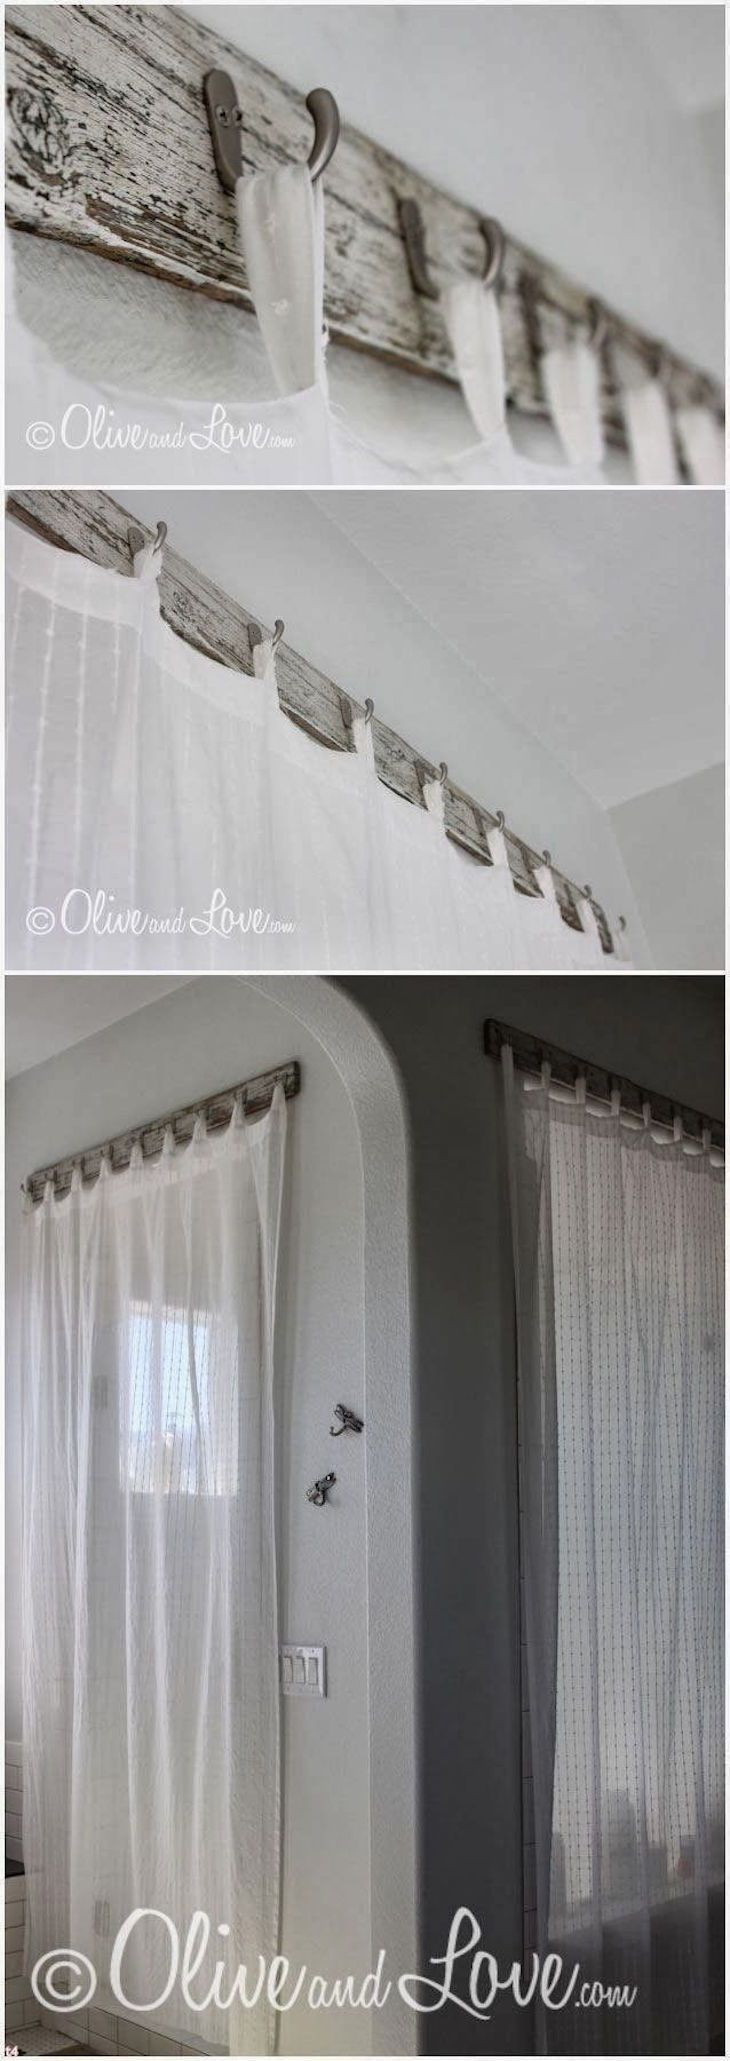 Top 10 Decorative Diy Curtain Designs Top Inspired Stylish